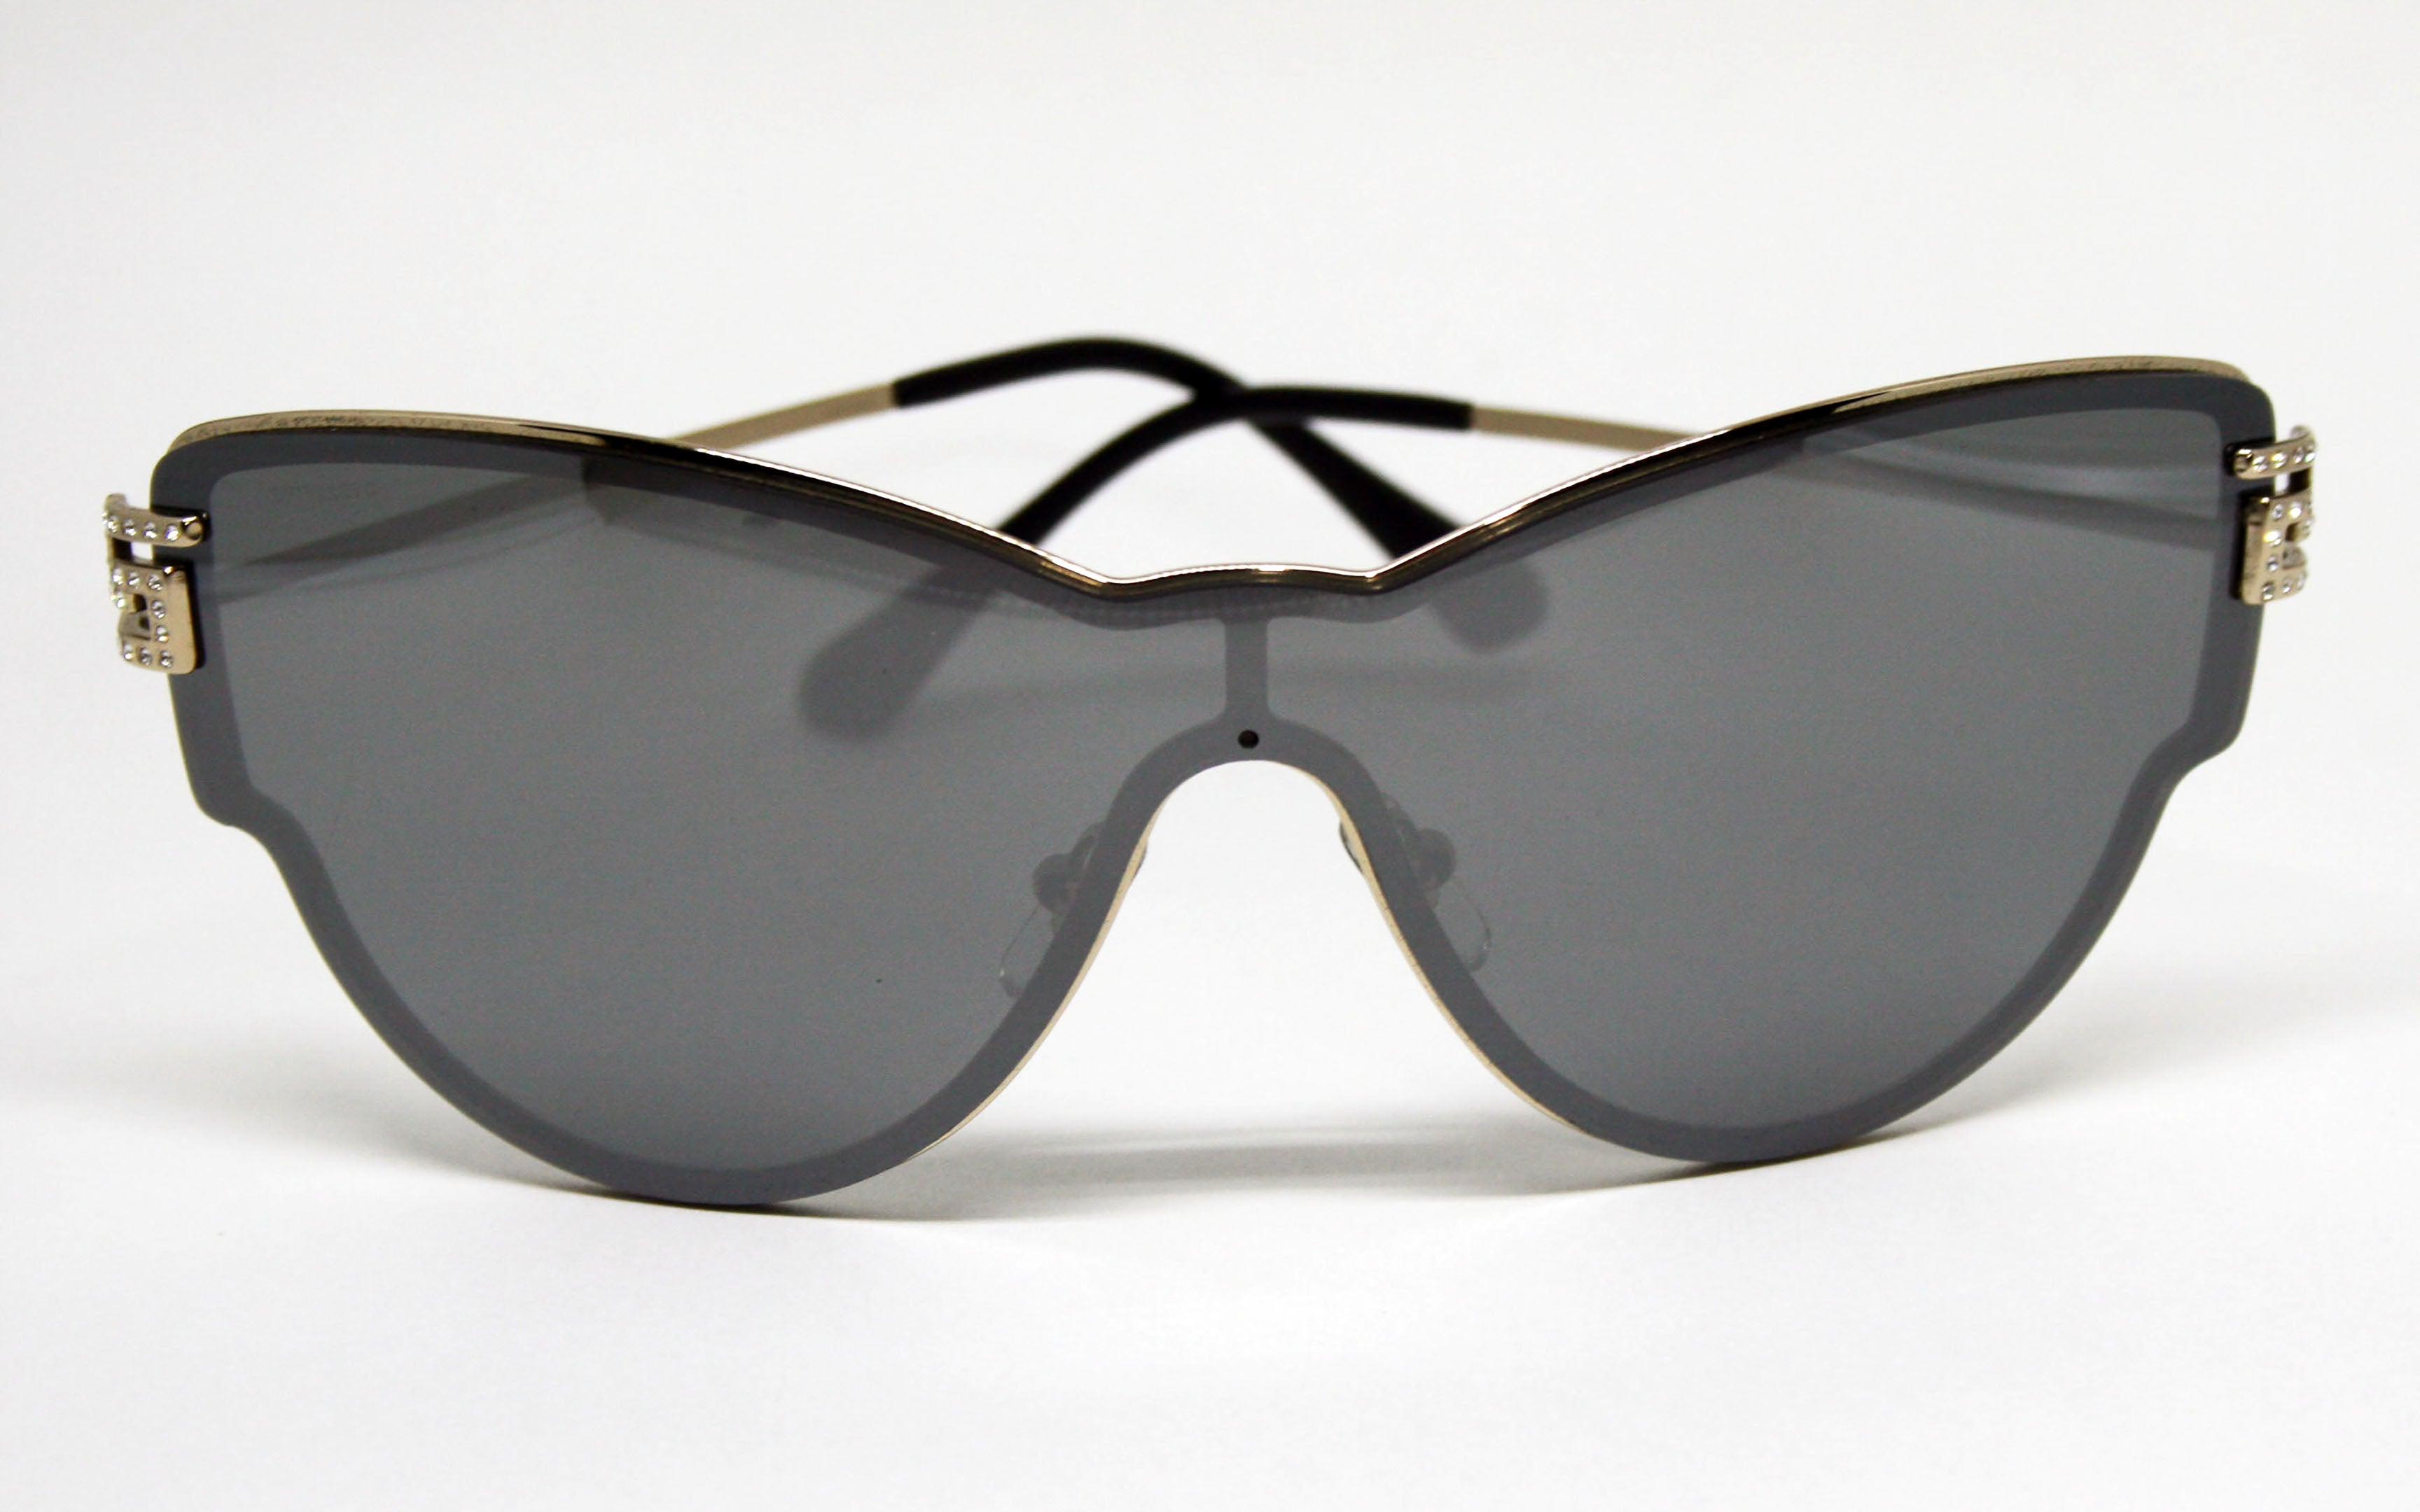 1a313aa2a1 Versace Pale Gold with Silver Mirror Sunglasses for Women VE2172B 12526G  Front View